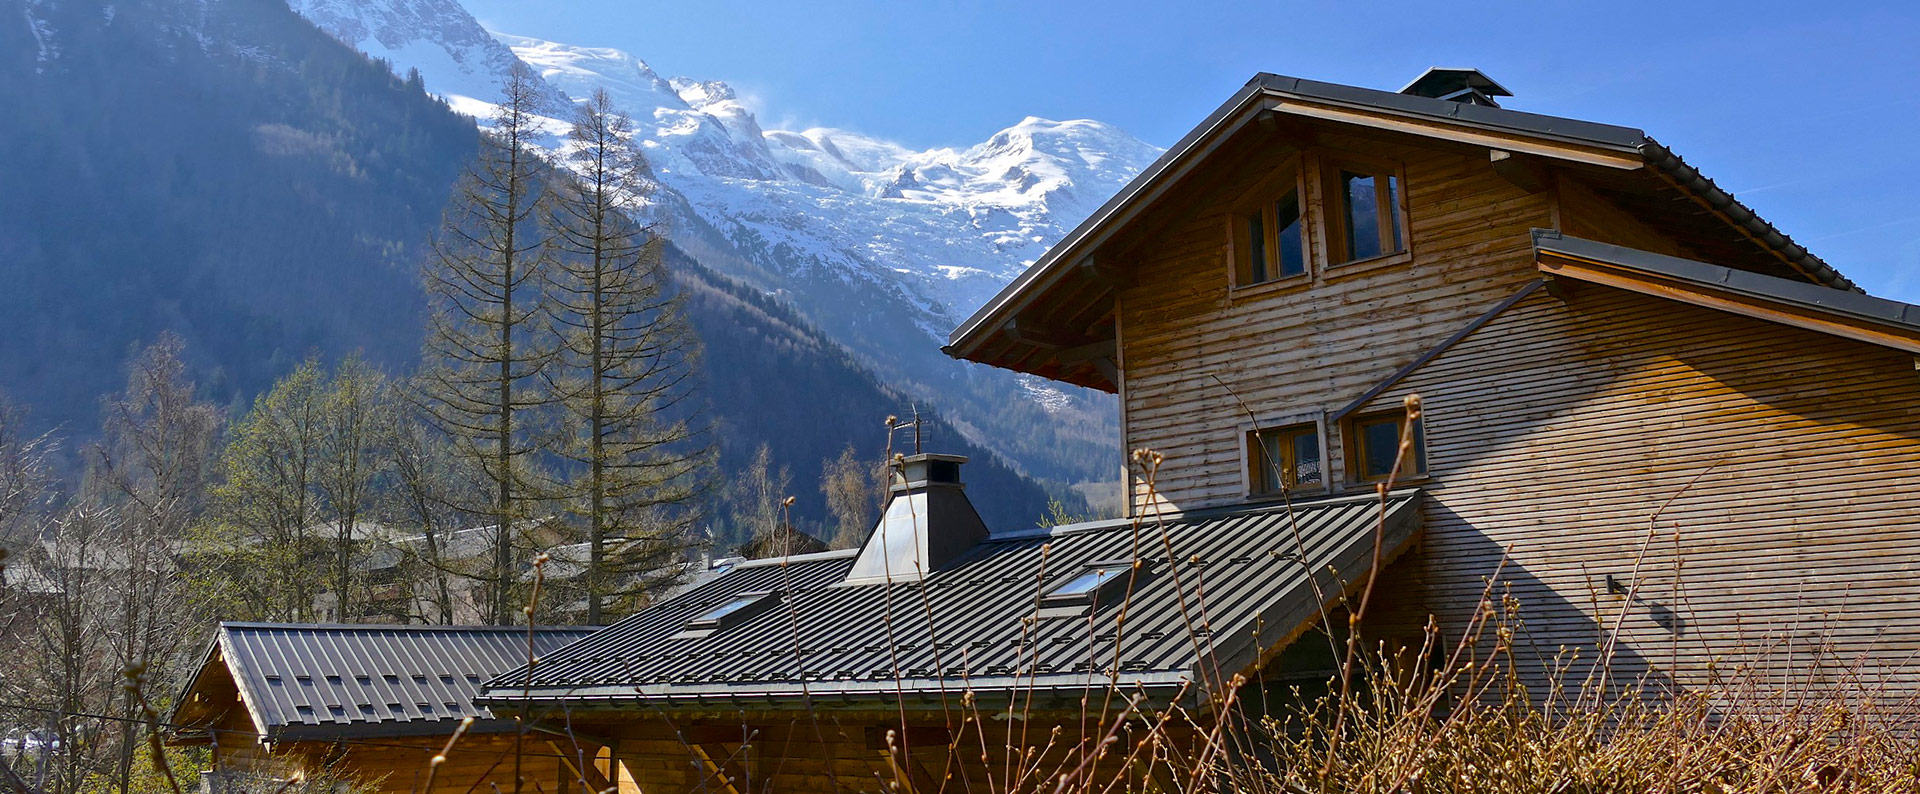 Chaletchampion Location1 Chamonix 14